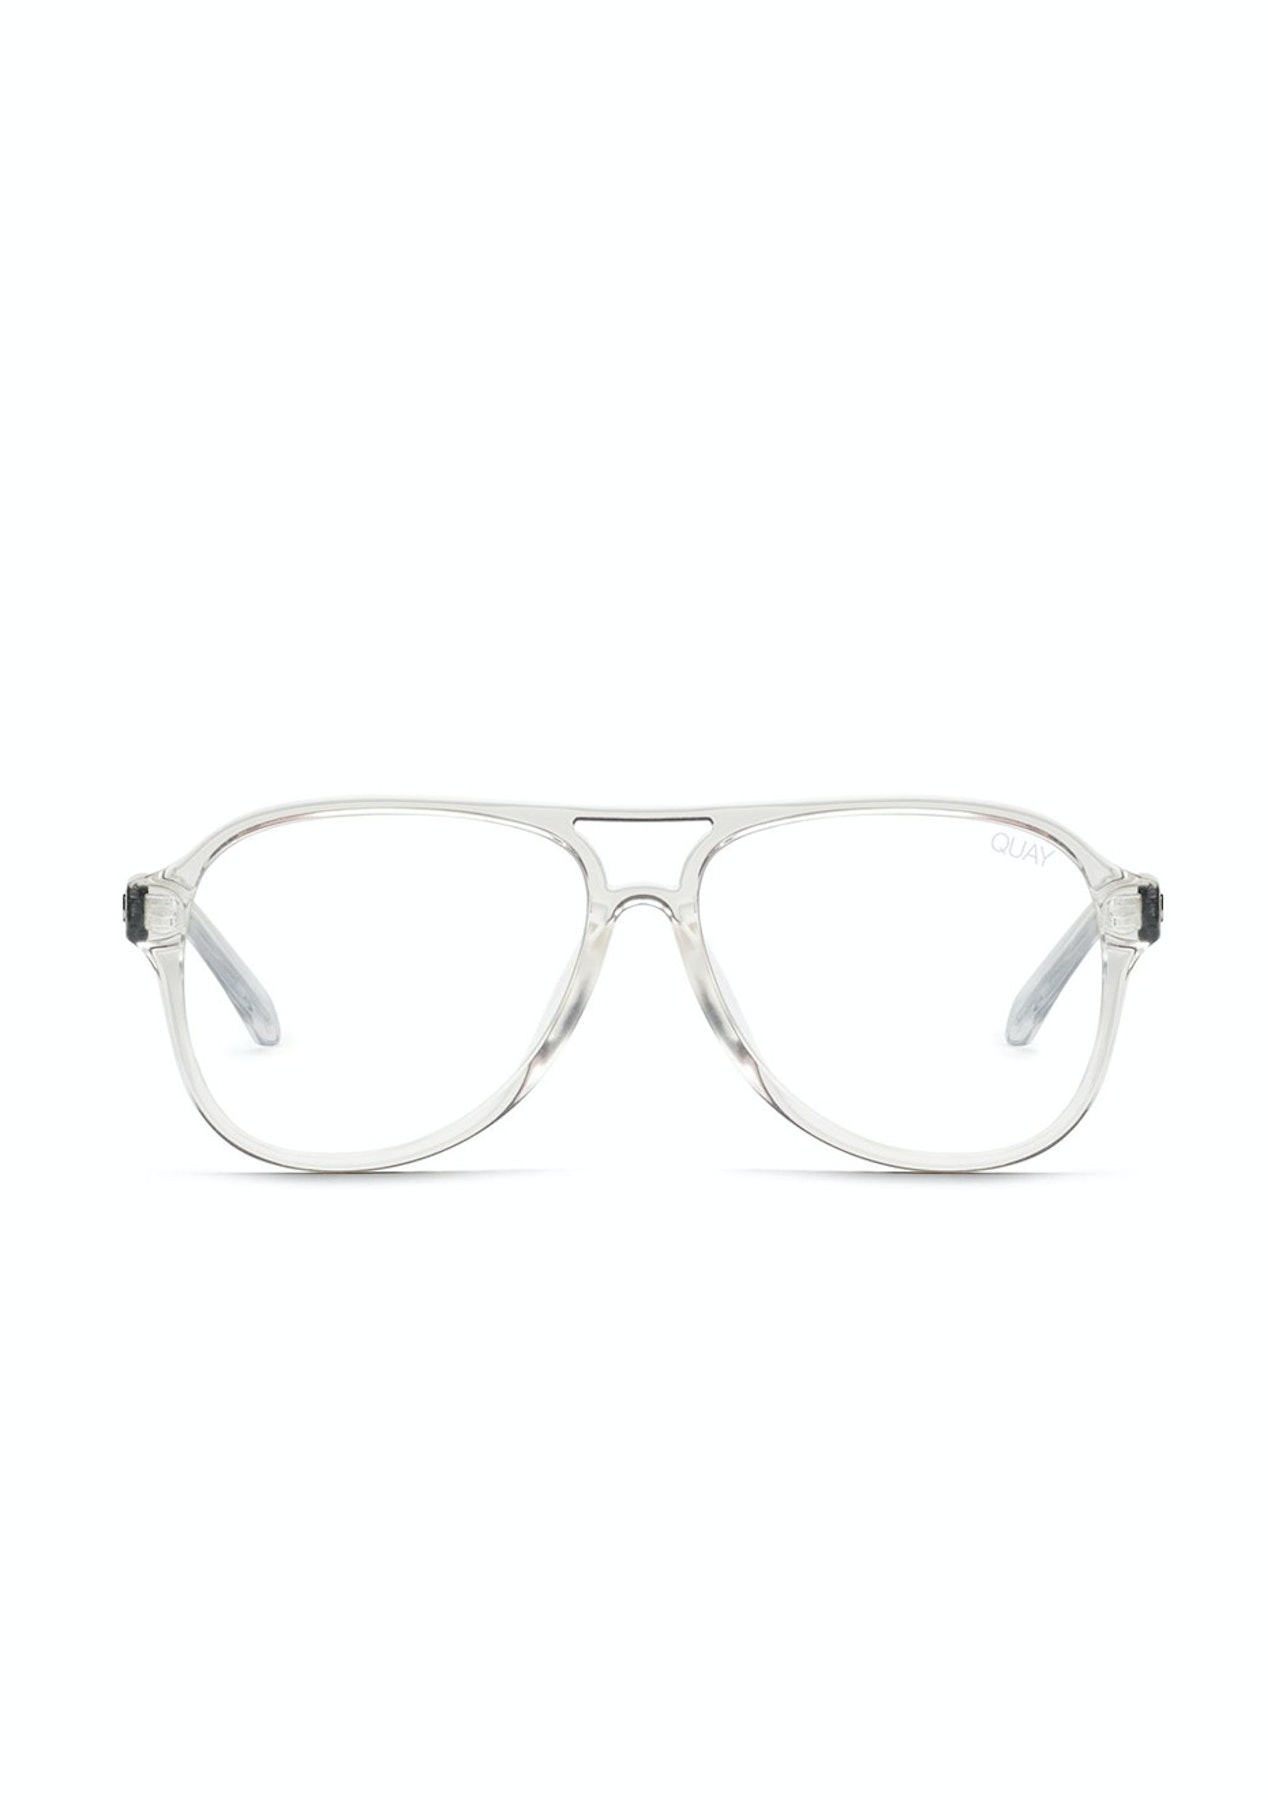 c0526a33d27 Quay Australia - Magnetic - Clear Clear Blue - Boxing Day Eyewear    Accessory Clearance - Onceit